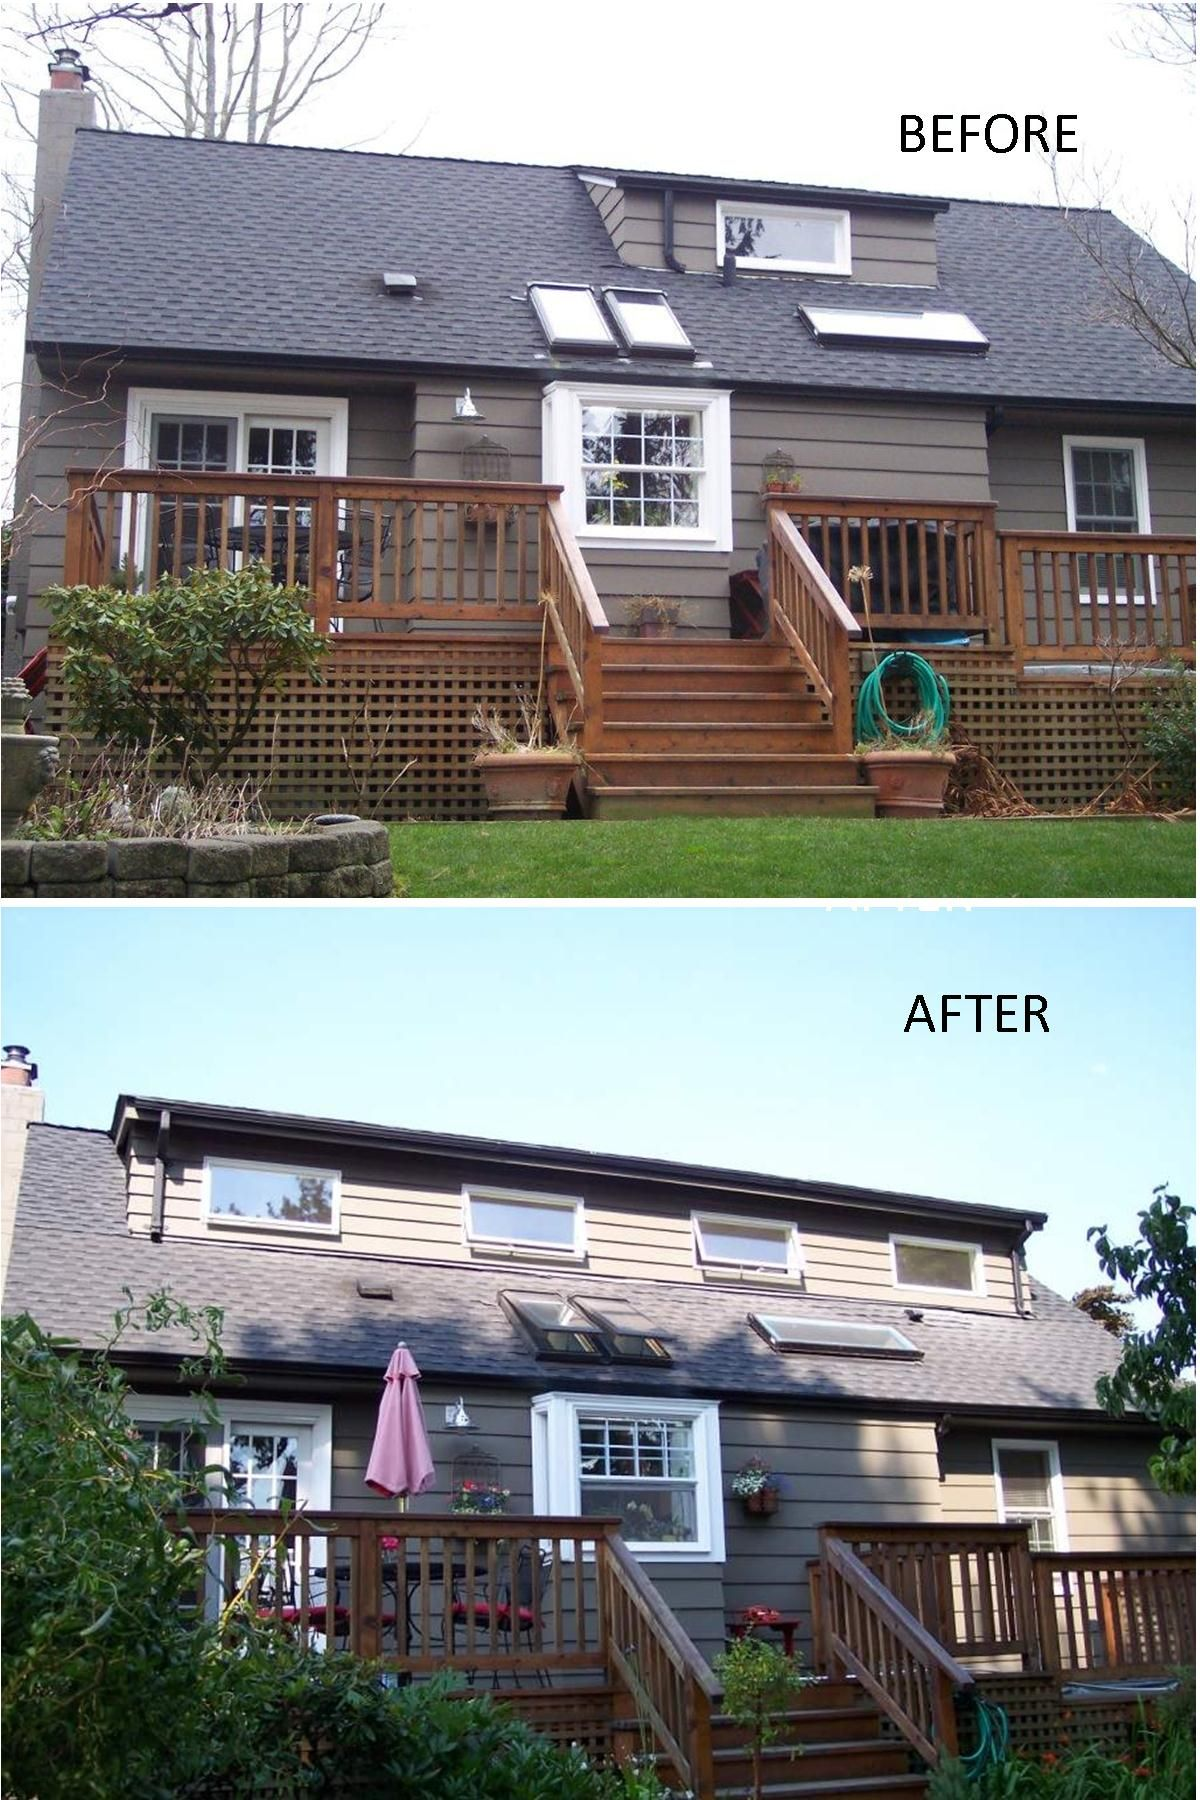 Before and after shot of a 30 foot shed dormer addition we built in